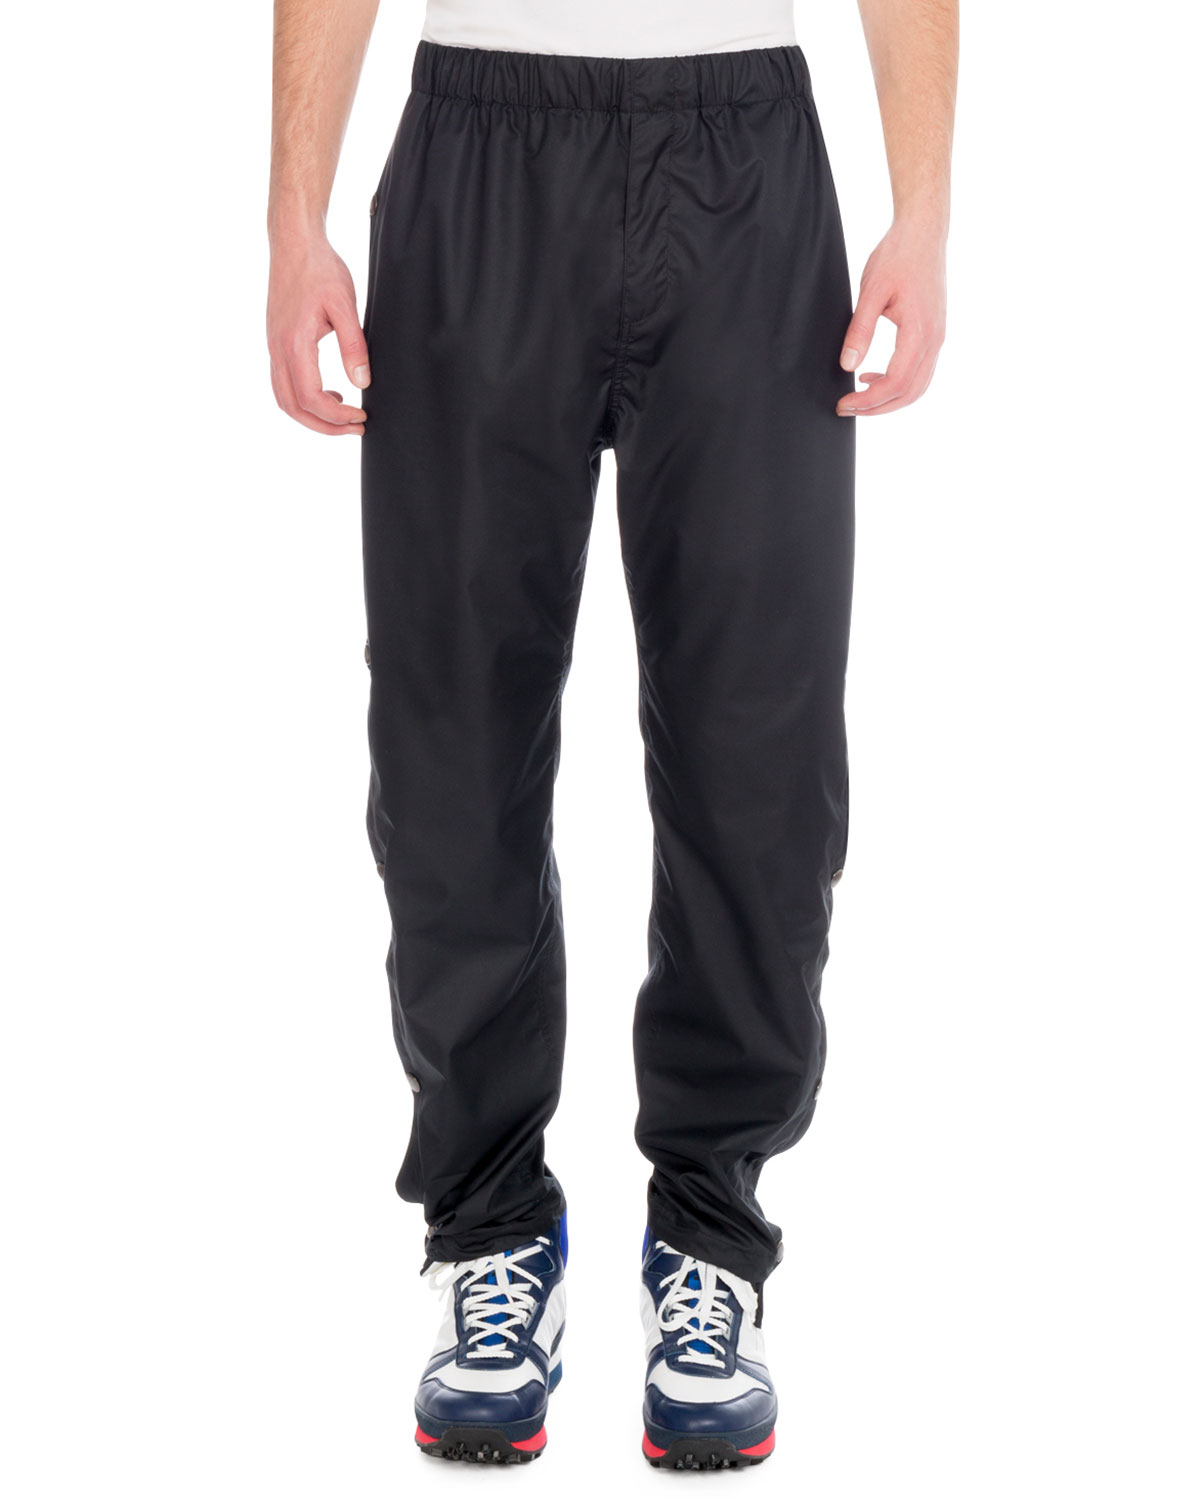 Baby Jogger Online Store Givenchy Men 39;s Nylon Jogger Pants Neiman Marcus